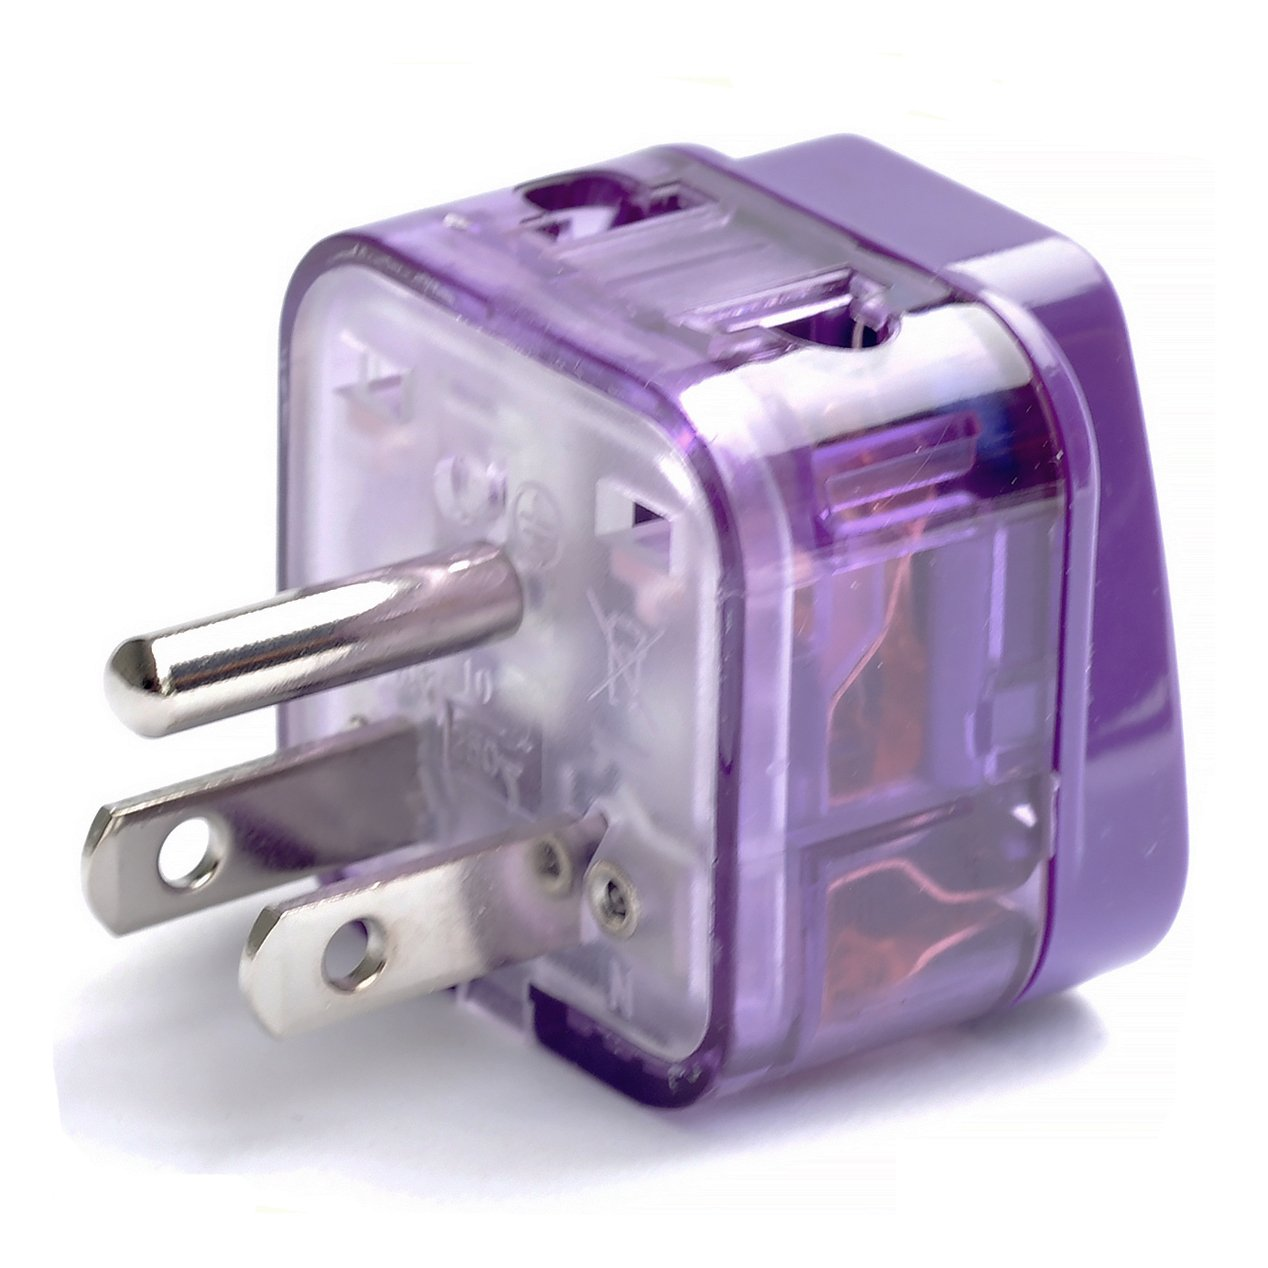 AC POWER TRAVEL ADAPTER PLUG FOR USA US CANADA SOUTH & NORTH AMERICA / WITH DUAL PLUG-IN PORTS AND SURGE PROTECTION / GROUNDED